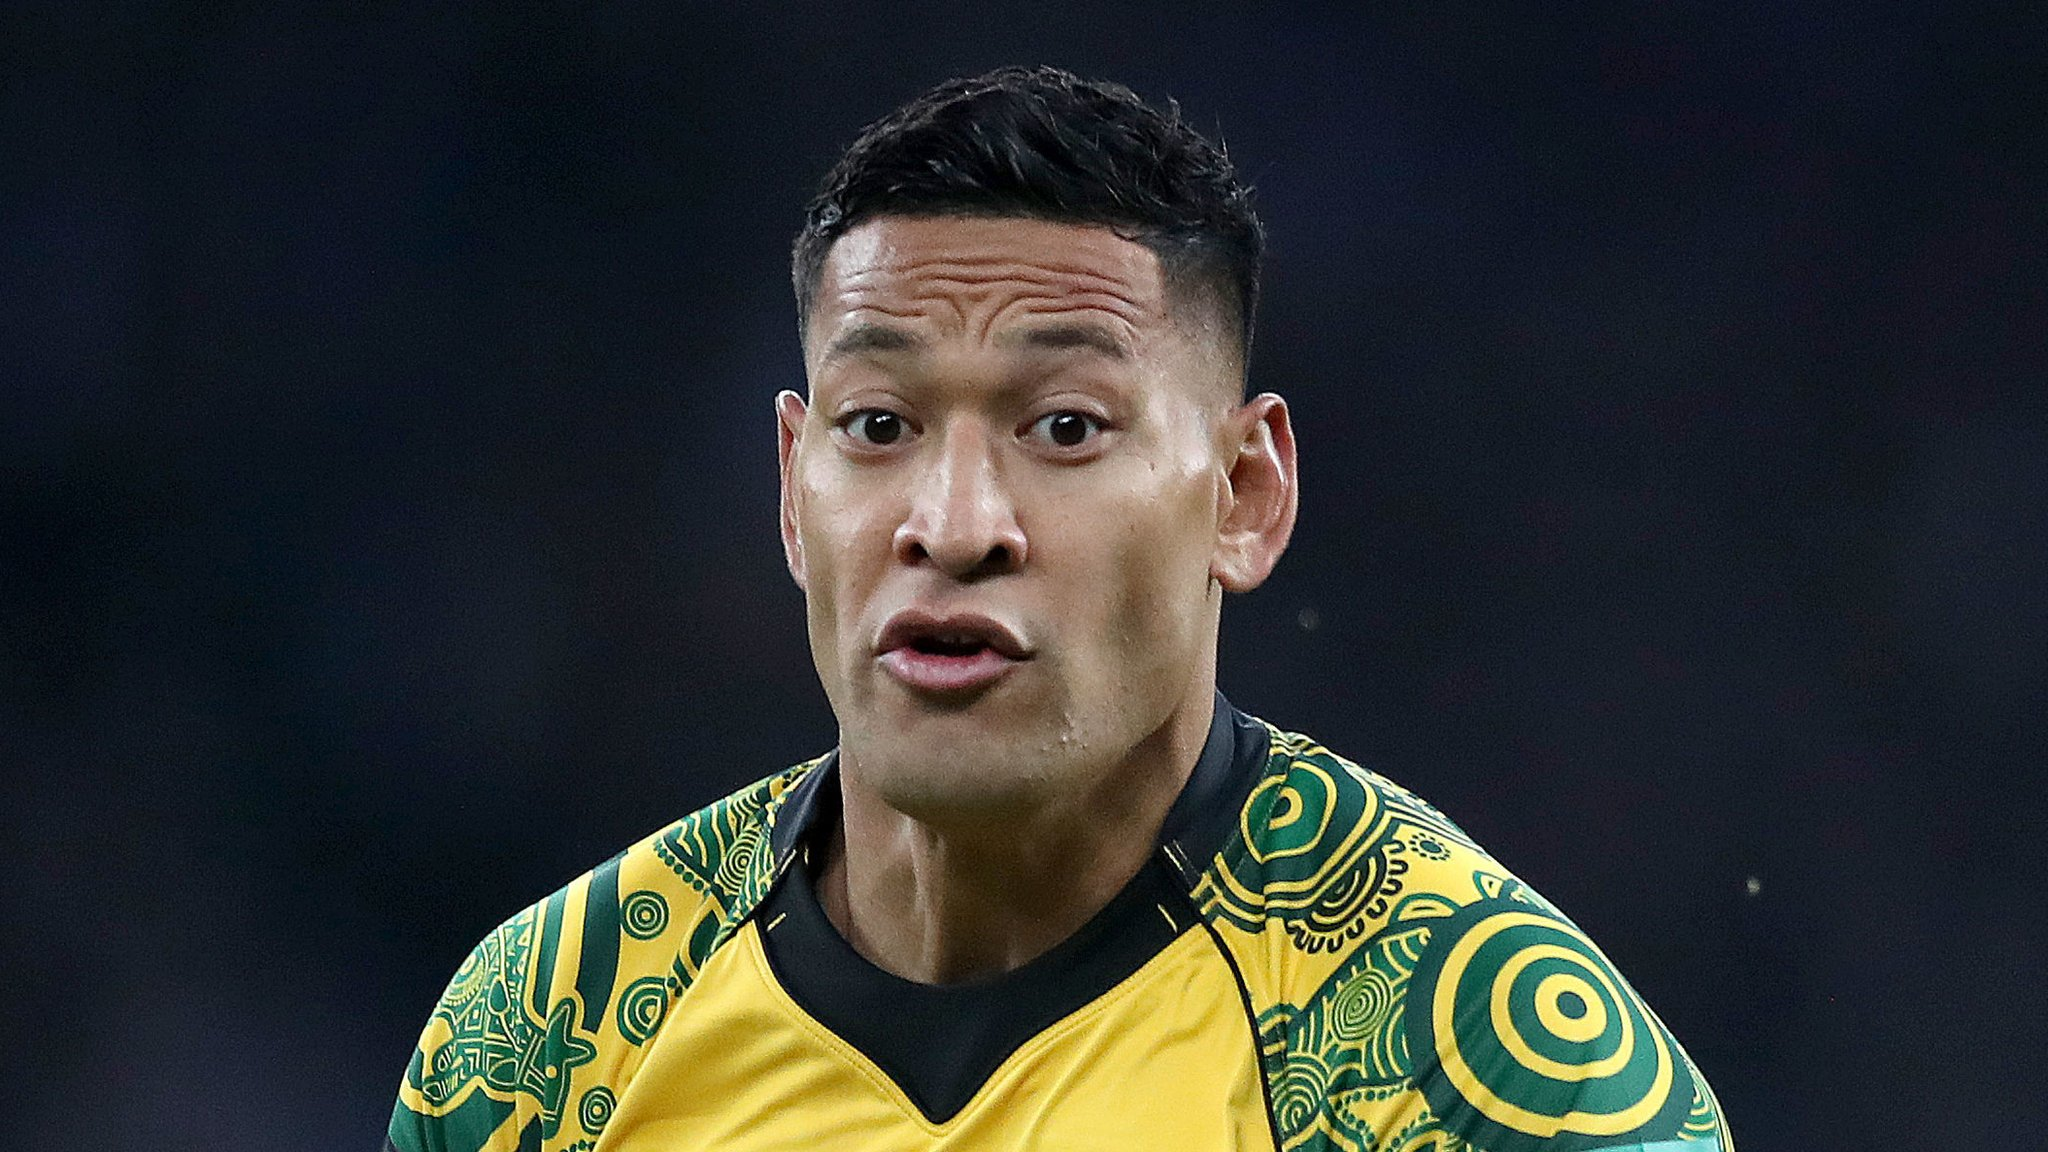 Folau opts against appeal over sacking but 'considering all options'